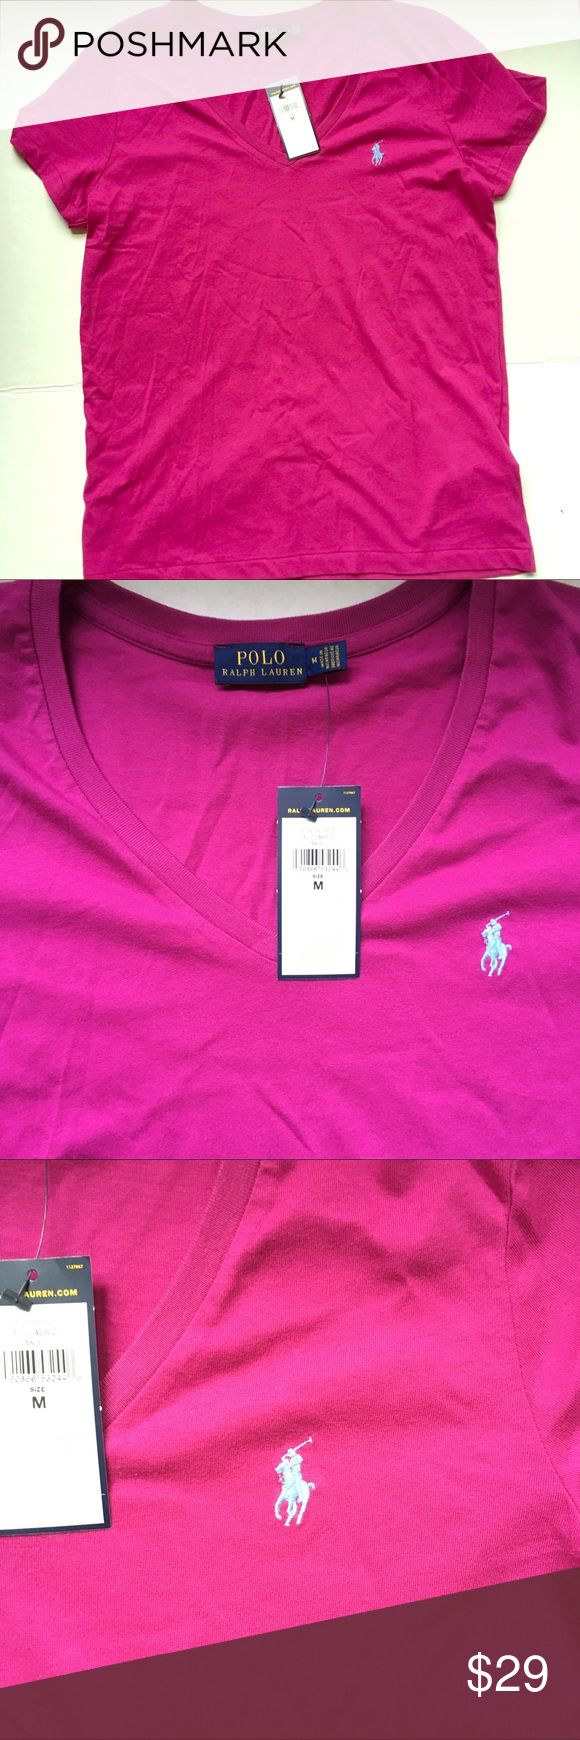 💕NEW Ralph Lauren pink v-neck shirt New with tag. Pink/purple colored v-neck t-shirt. Light blue polo emblem.  100% cotton.                                                        🛍BUNDLE=SAVE  🚫TRADE  💯Authentic   🖲USE BLUE OFFER BUTTON TO NEGOTIATE   ✔️Ask Questions Not Answered in Description--Want You to Be Happy! Polo by Ralph Lauren Tops Tees - Short Sleeve